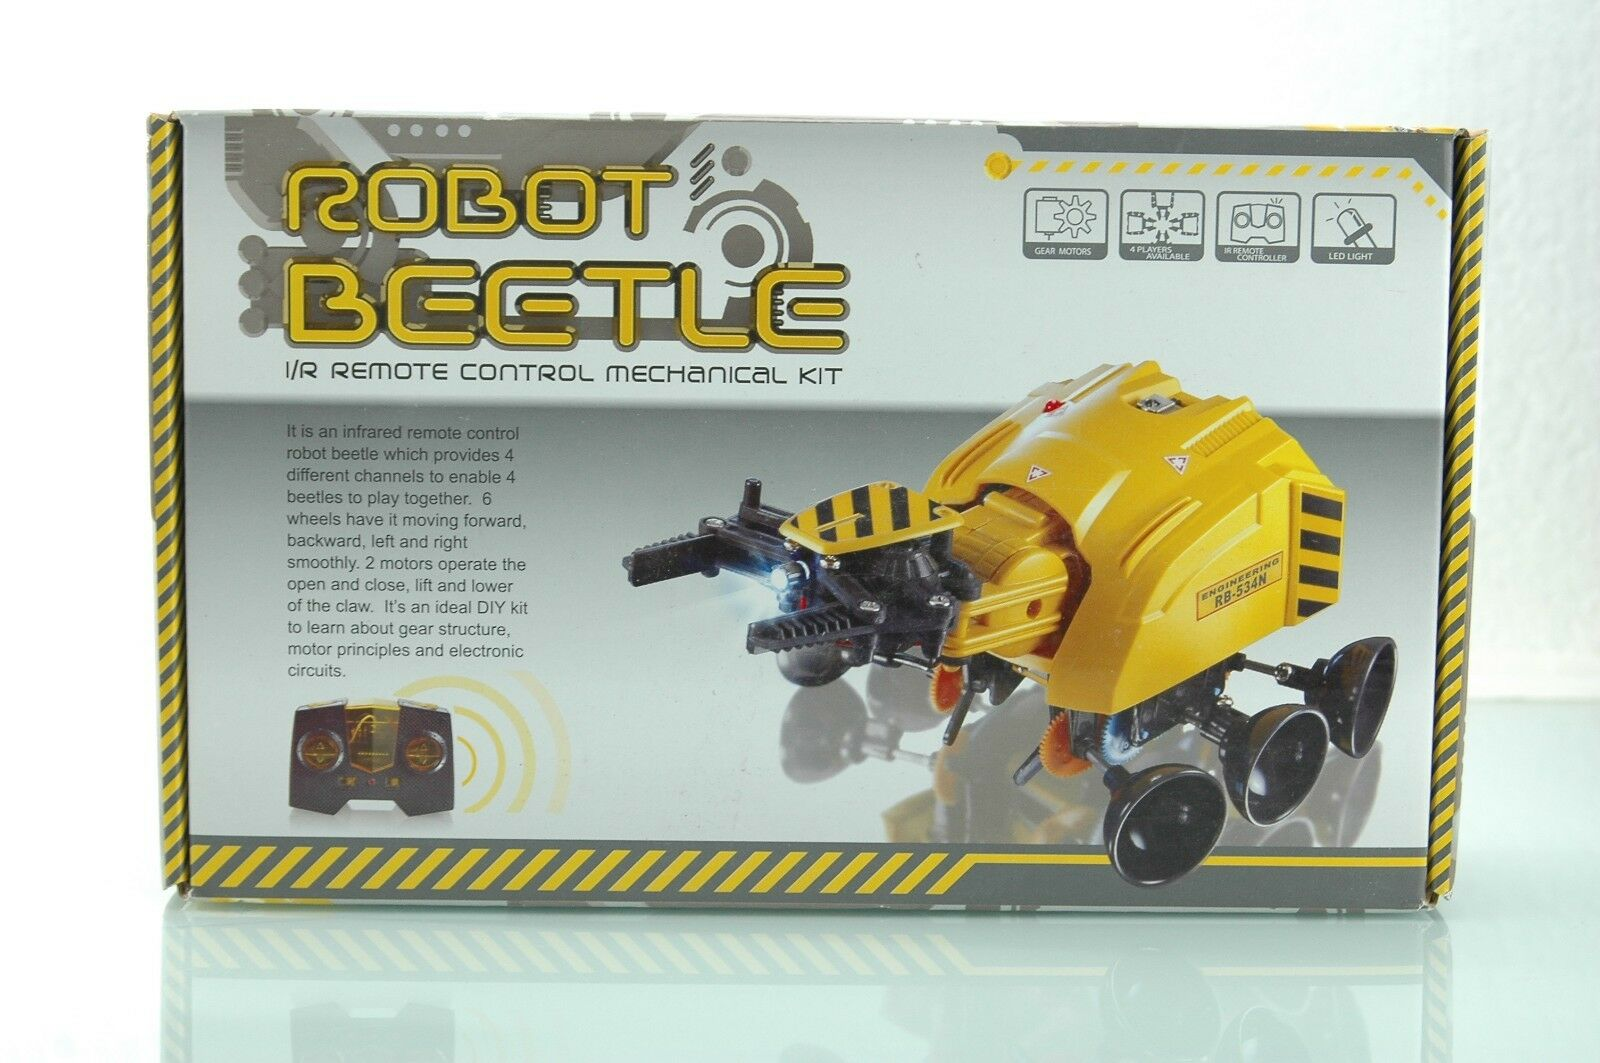 Elenco 21-534N IR Remote Control Robot Beetle Building Kit FOR CHARITY